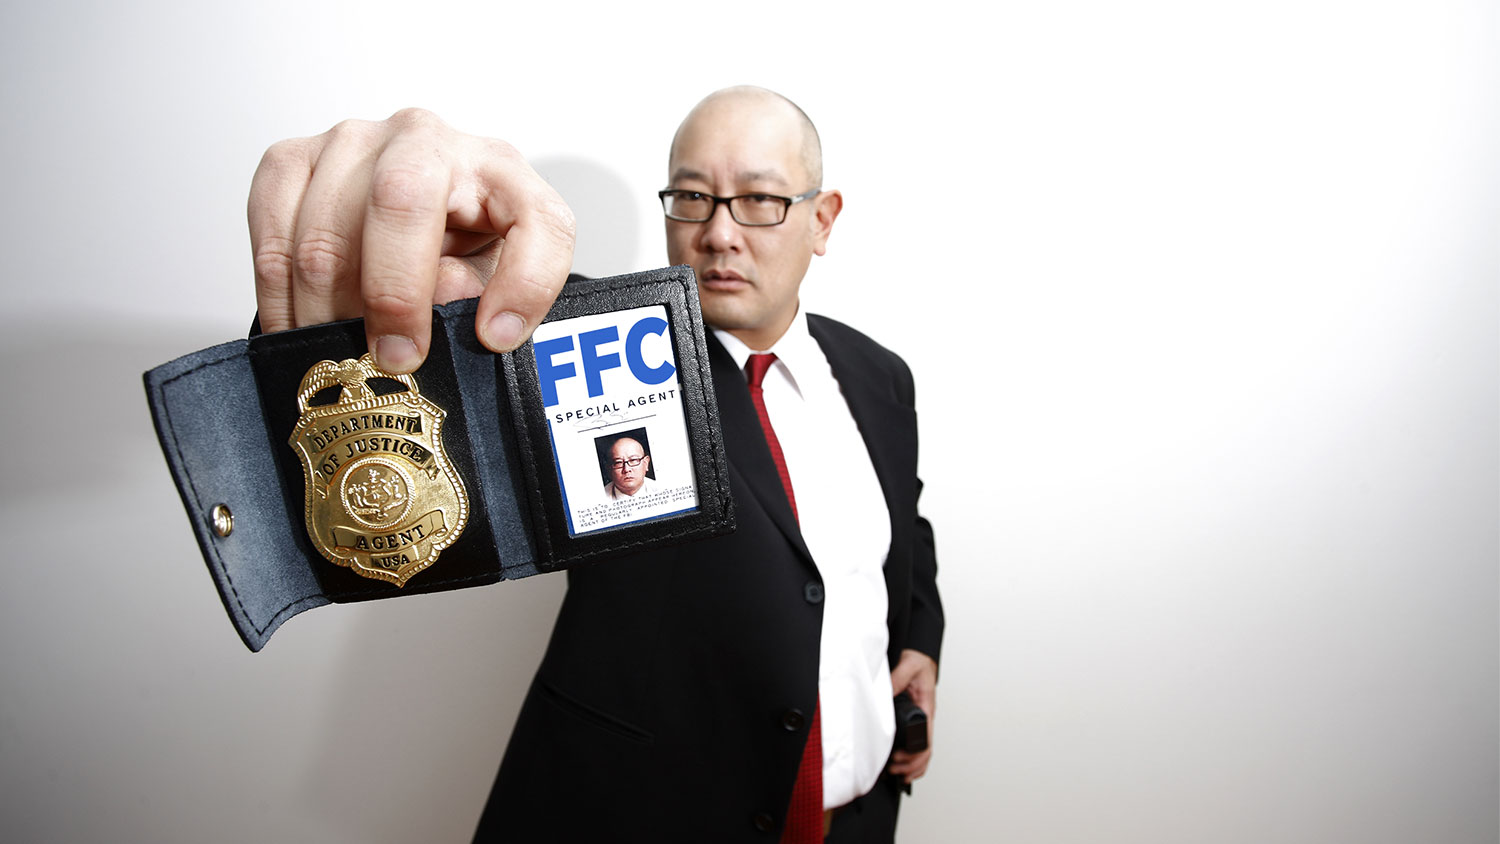 WHY ITS IMPORTANT TO CHECK YOUR AGENT'S CREDENTIALS